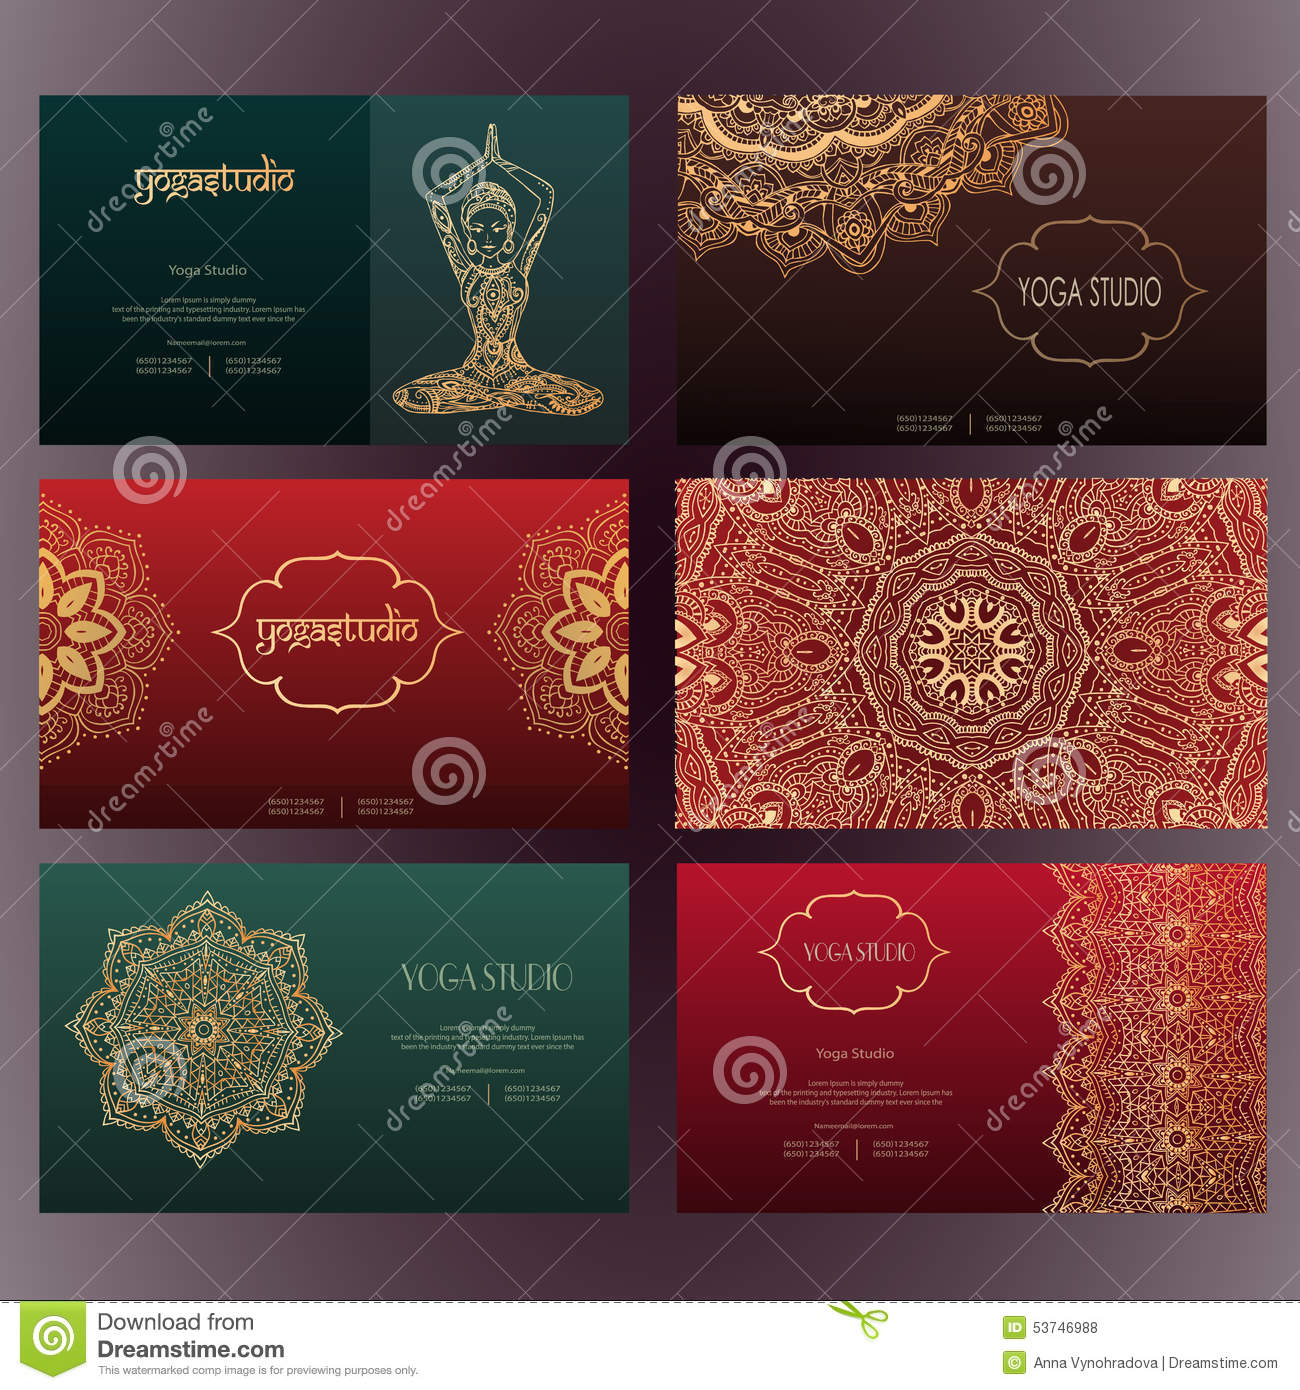 Yoga business cards free gallery card design and card template yoga business card stock vector illustration of label 63906948 mandalas business card 4 yoga royalty free reheart Images